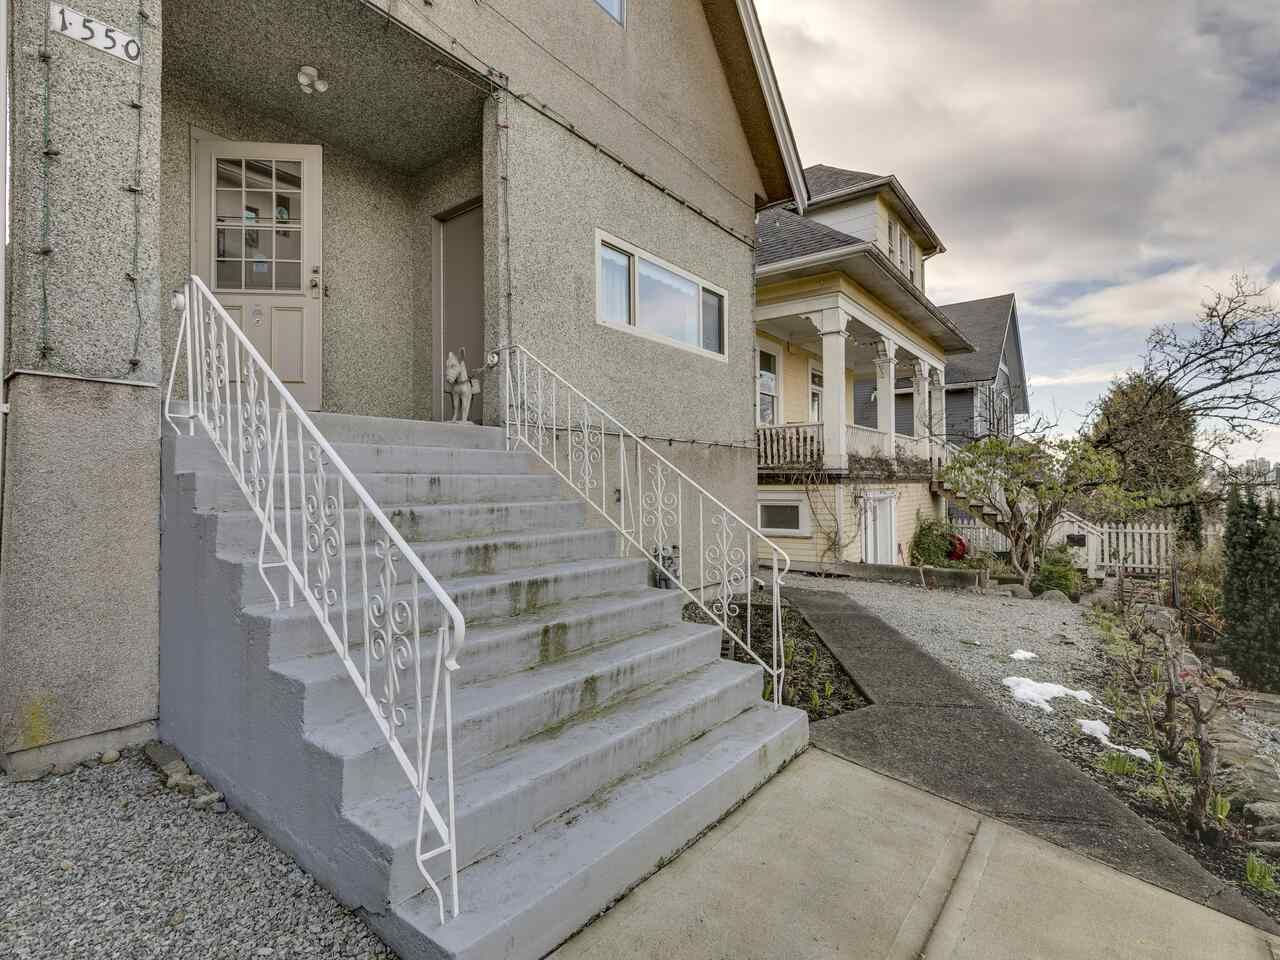 """Photo 3: Photos: 1550 GRANT Street in Vancouver: Grandview Woodland House for sale in """"GRANVIEW"""" (Vancouver East)  : MLS®# R2539844"""